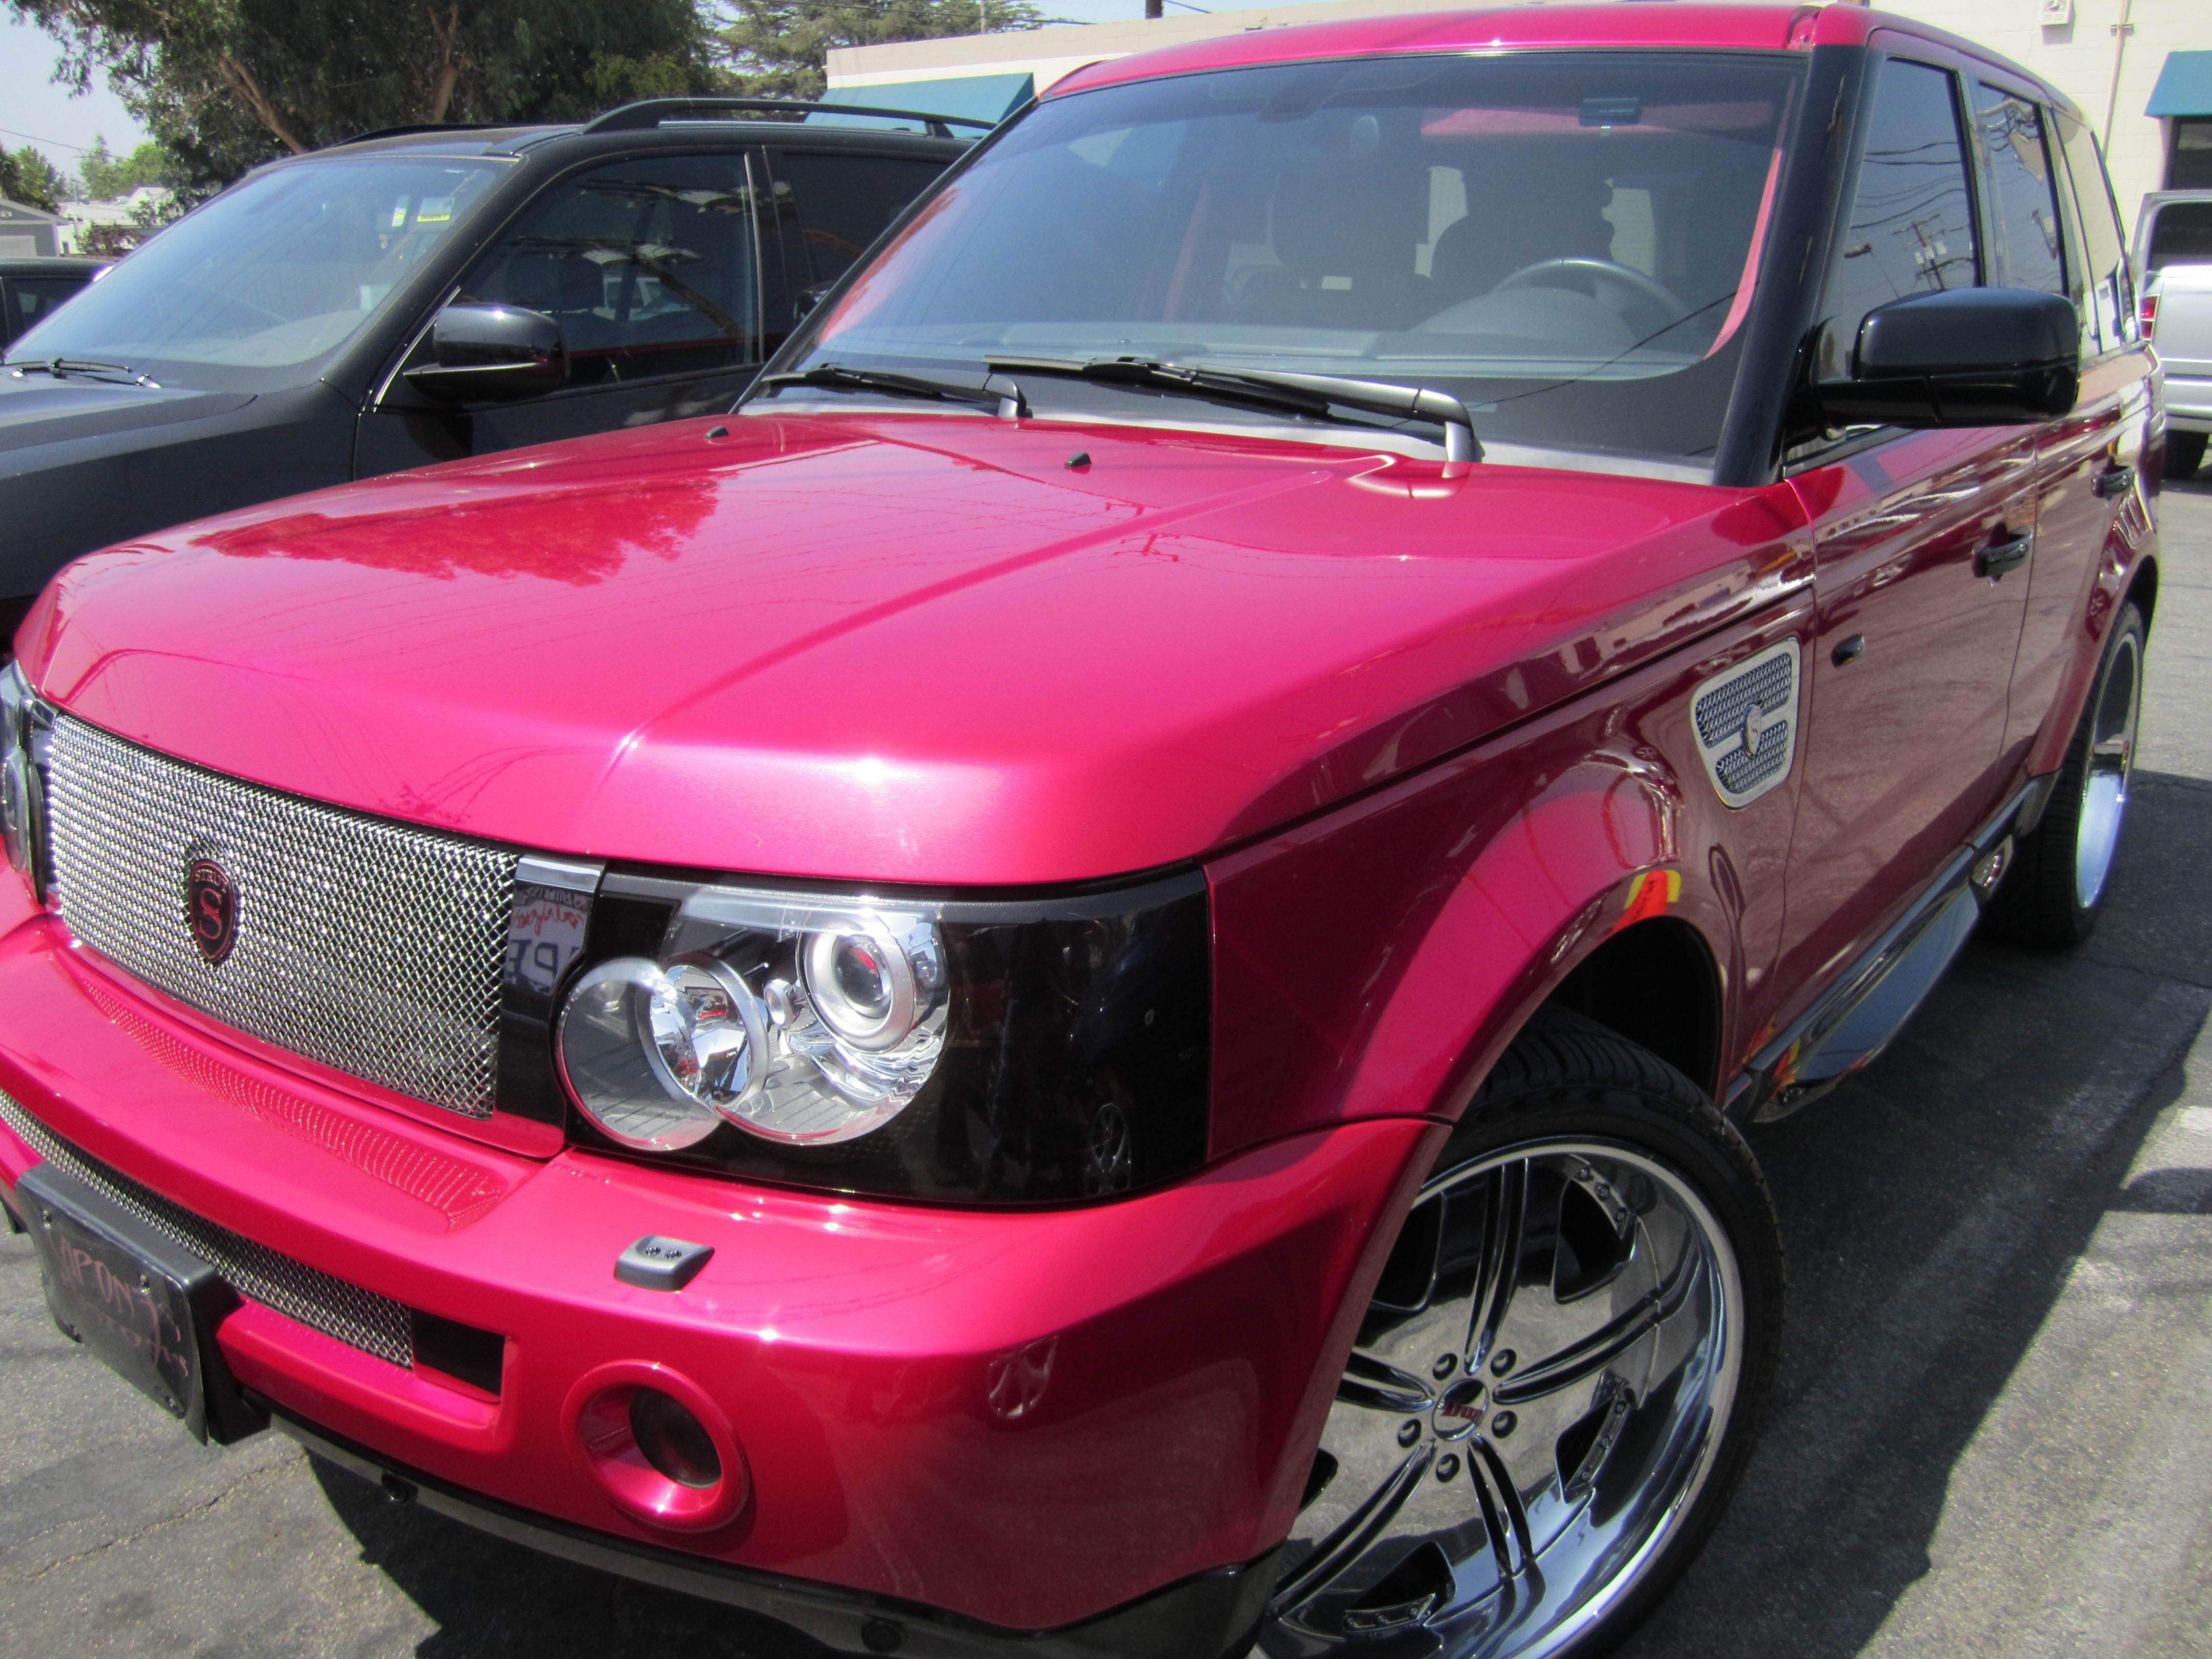 LaLa Anthony's Pink Range Rover #rangerover #pinkrangerovers LaLa Anthony's Pink Range Rover #rangerover #pinkrangerovers